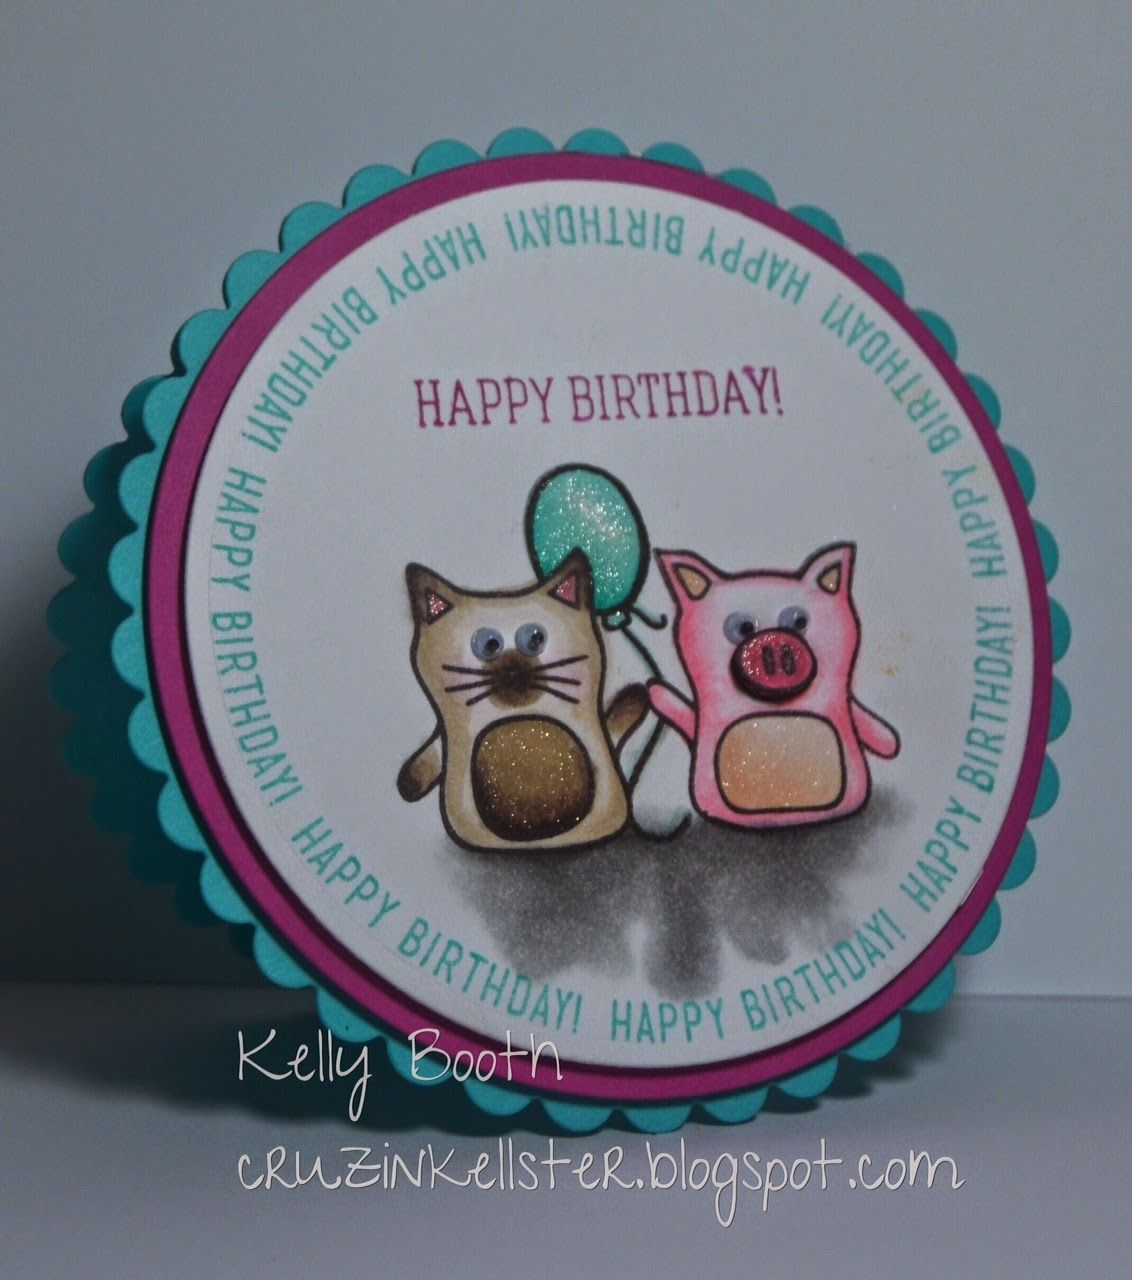 Created by Kelly Booth using brand New Simon Says Stamp Exclusives